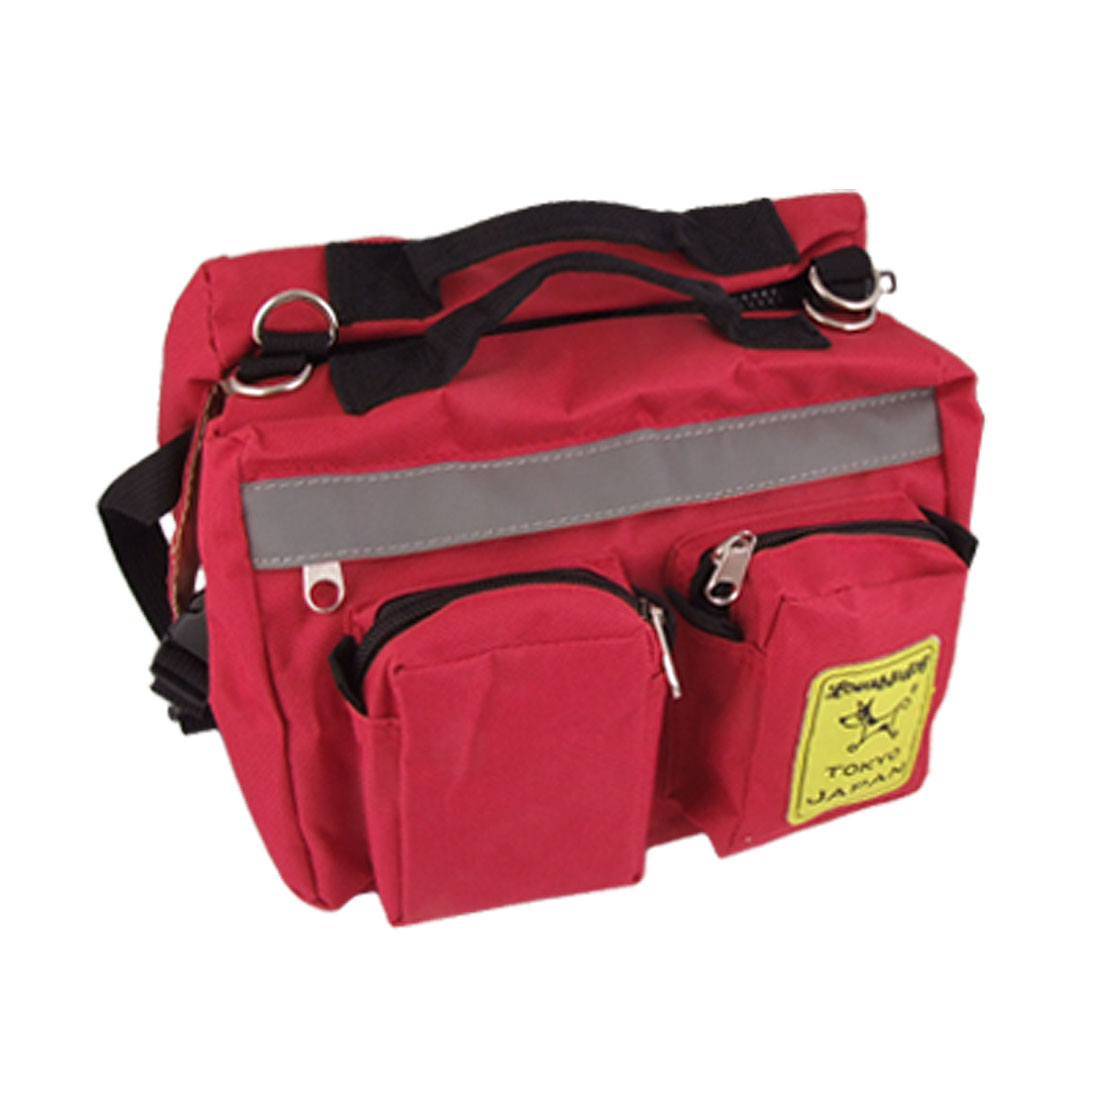 Red Casual Pet Puppy Dog Carrier Traveling Carrying Bag Backpack Saddle Bag